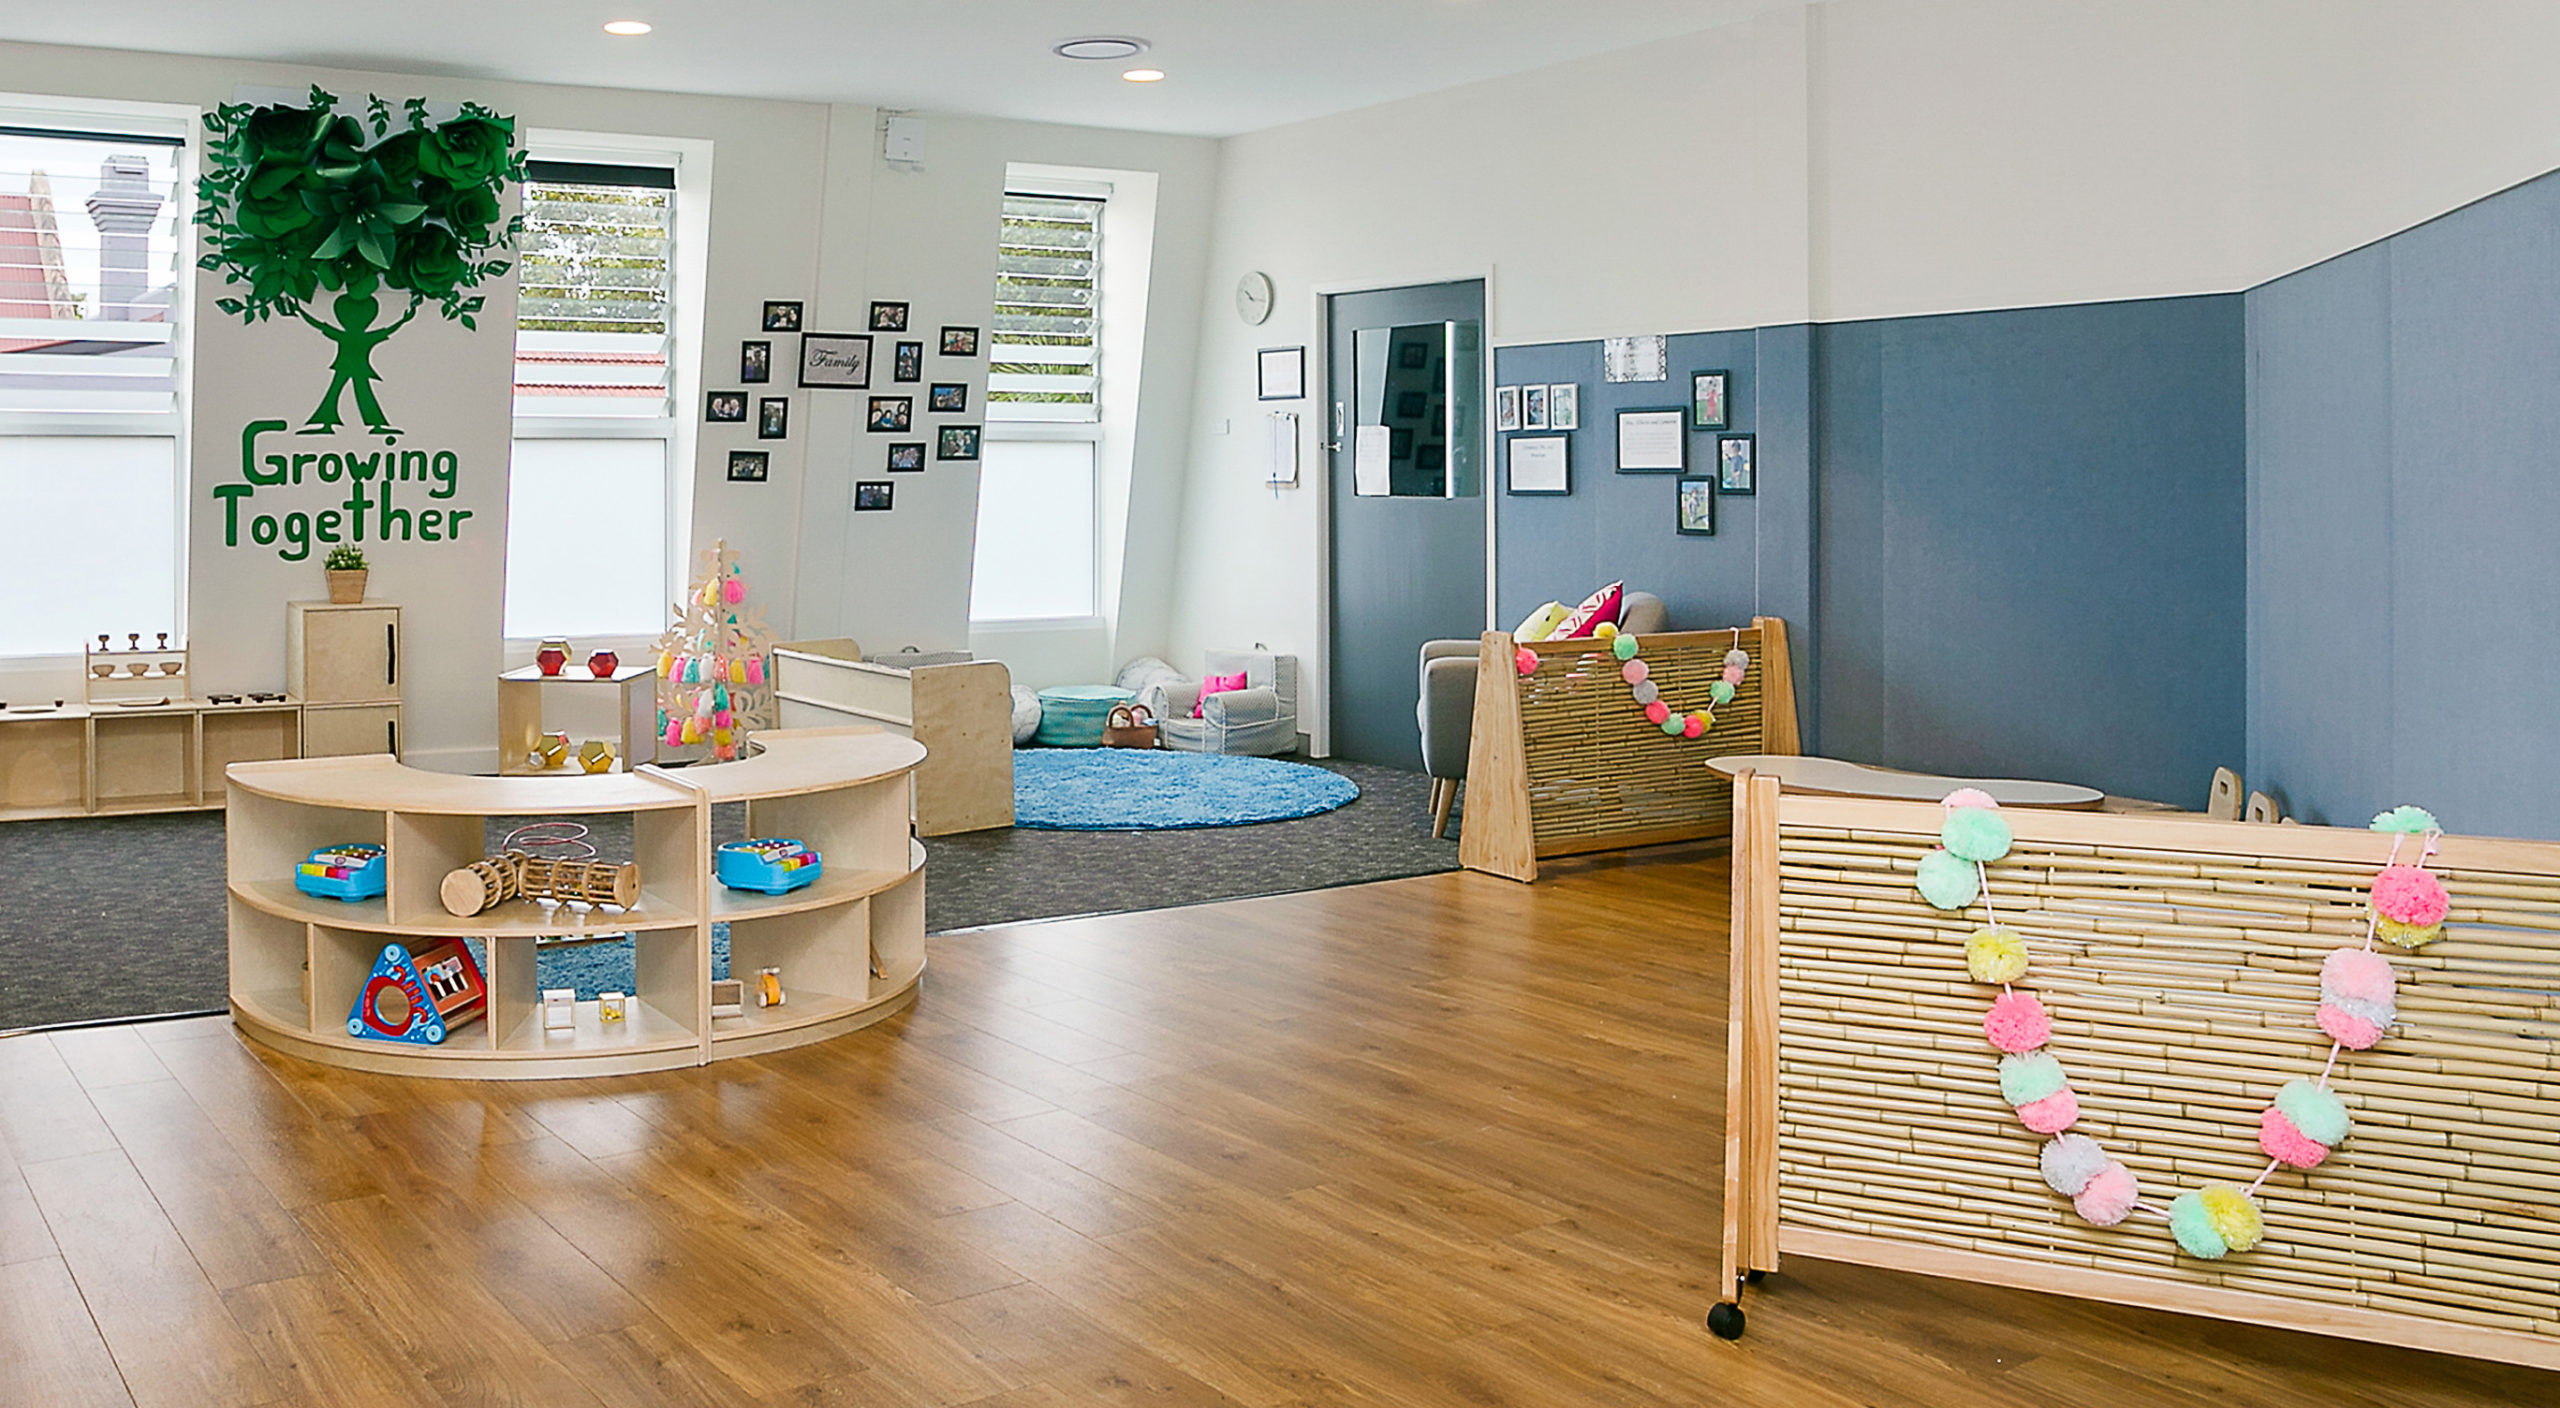 Only About Children Childcare Surry Hills Play Area Interior Design- Gardner Wetherill GW 02